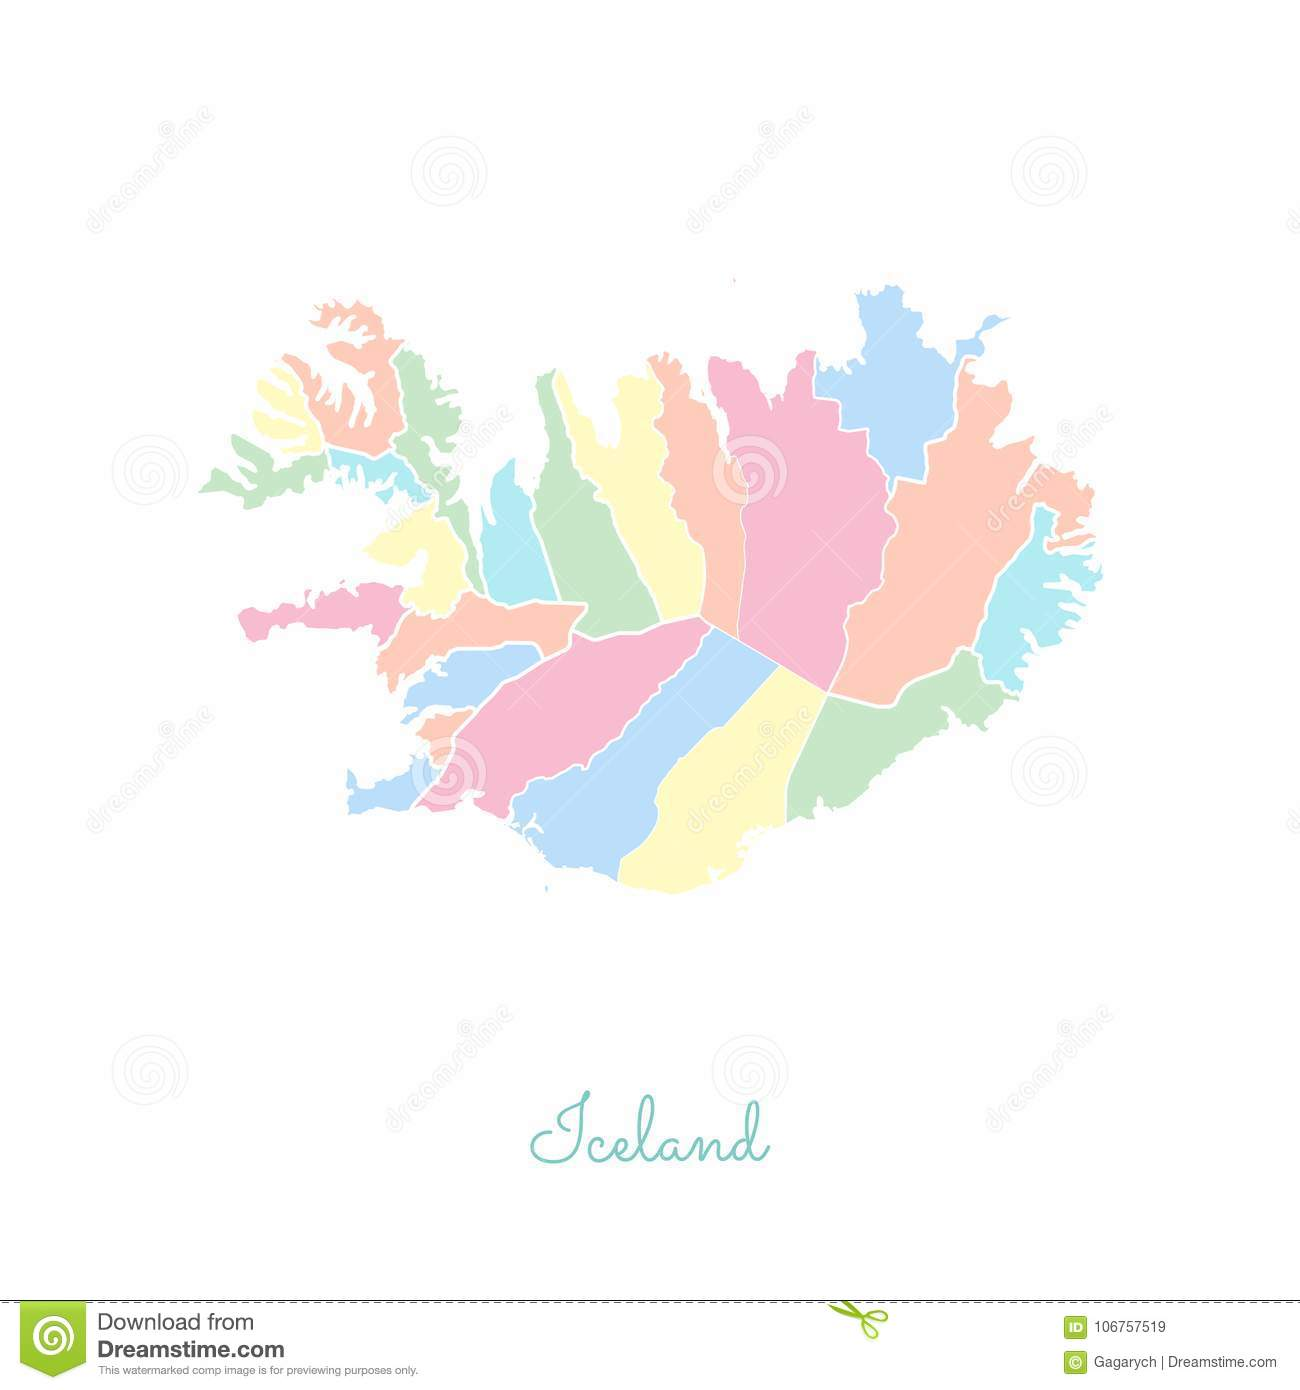 Iceland Region Map: Colorful With White Outline. Stock Vector ... on burma map outline, south pacific islands map outline, norfolk island map outline, poland map outline, german states map outline, cape town south africa map outline, benin map outline, slovakia map outline, greenland map outline, cyprus map outline, the usa map outline, gambia map outline, macau map outline, st croix map outline, mauritania map outline, bangladesh map outline, holy roman empire map outline, far east map outline, russia map outline, aruba map outline,